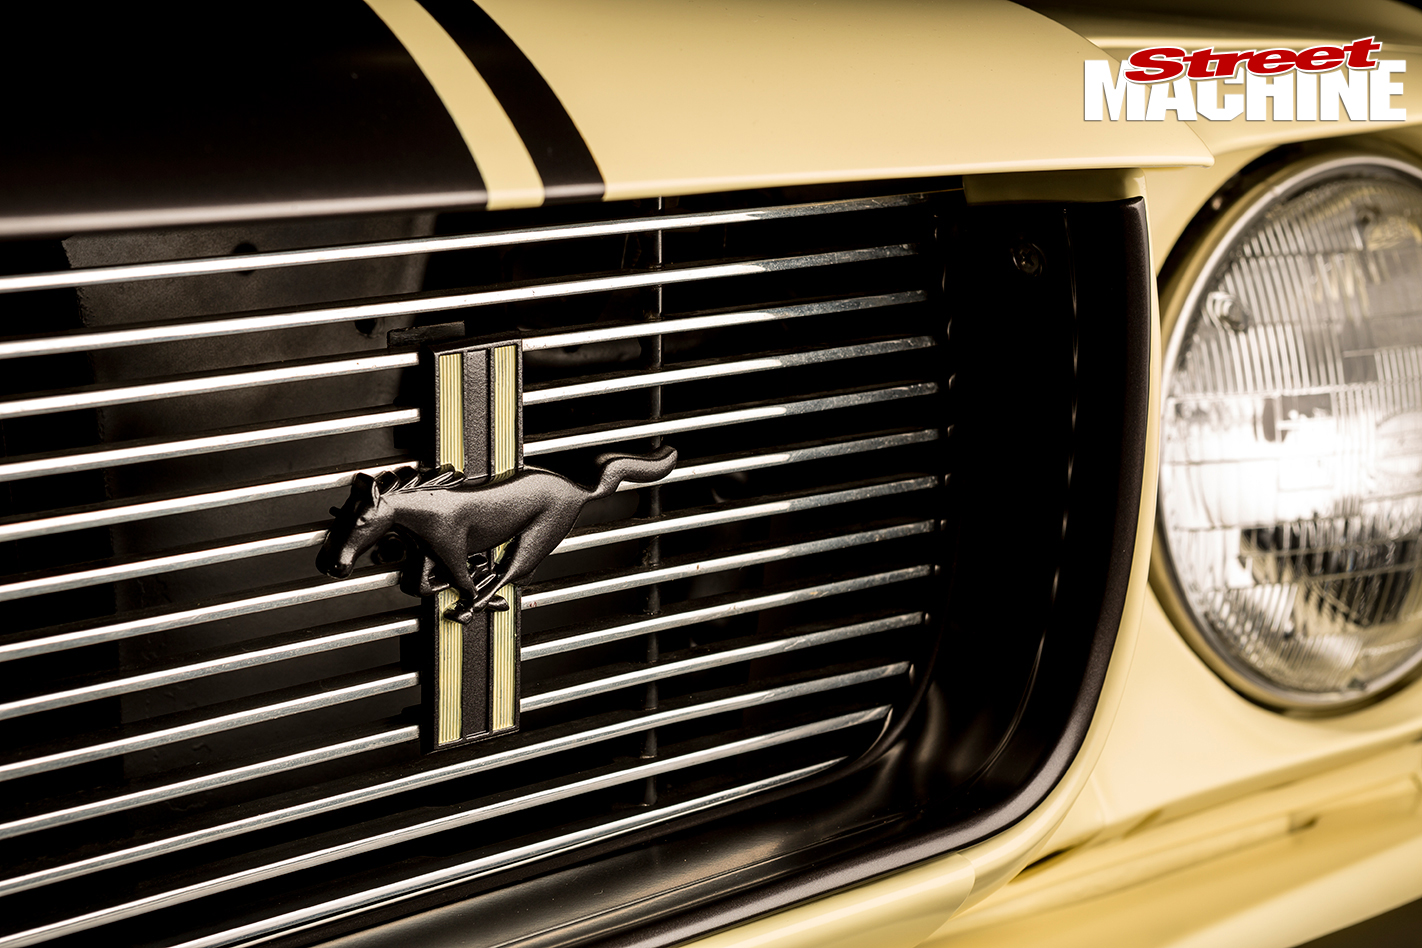 Ford -Mustang -1-front -grill